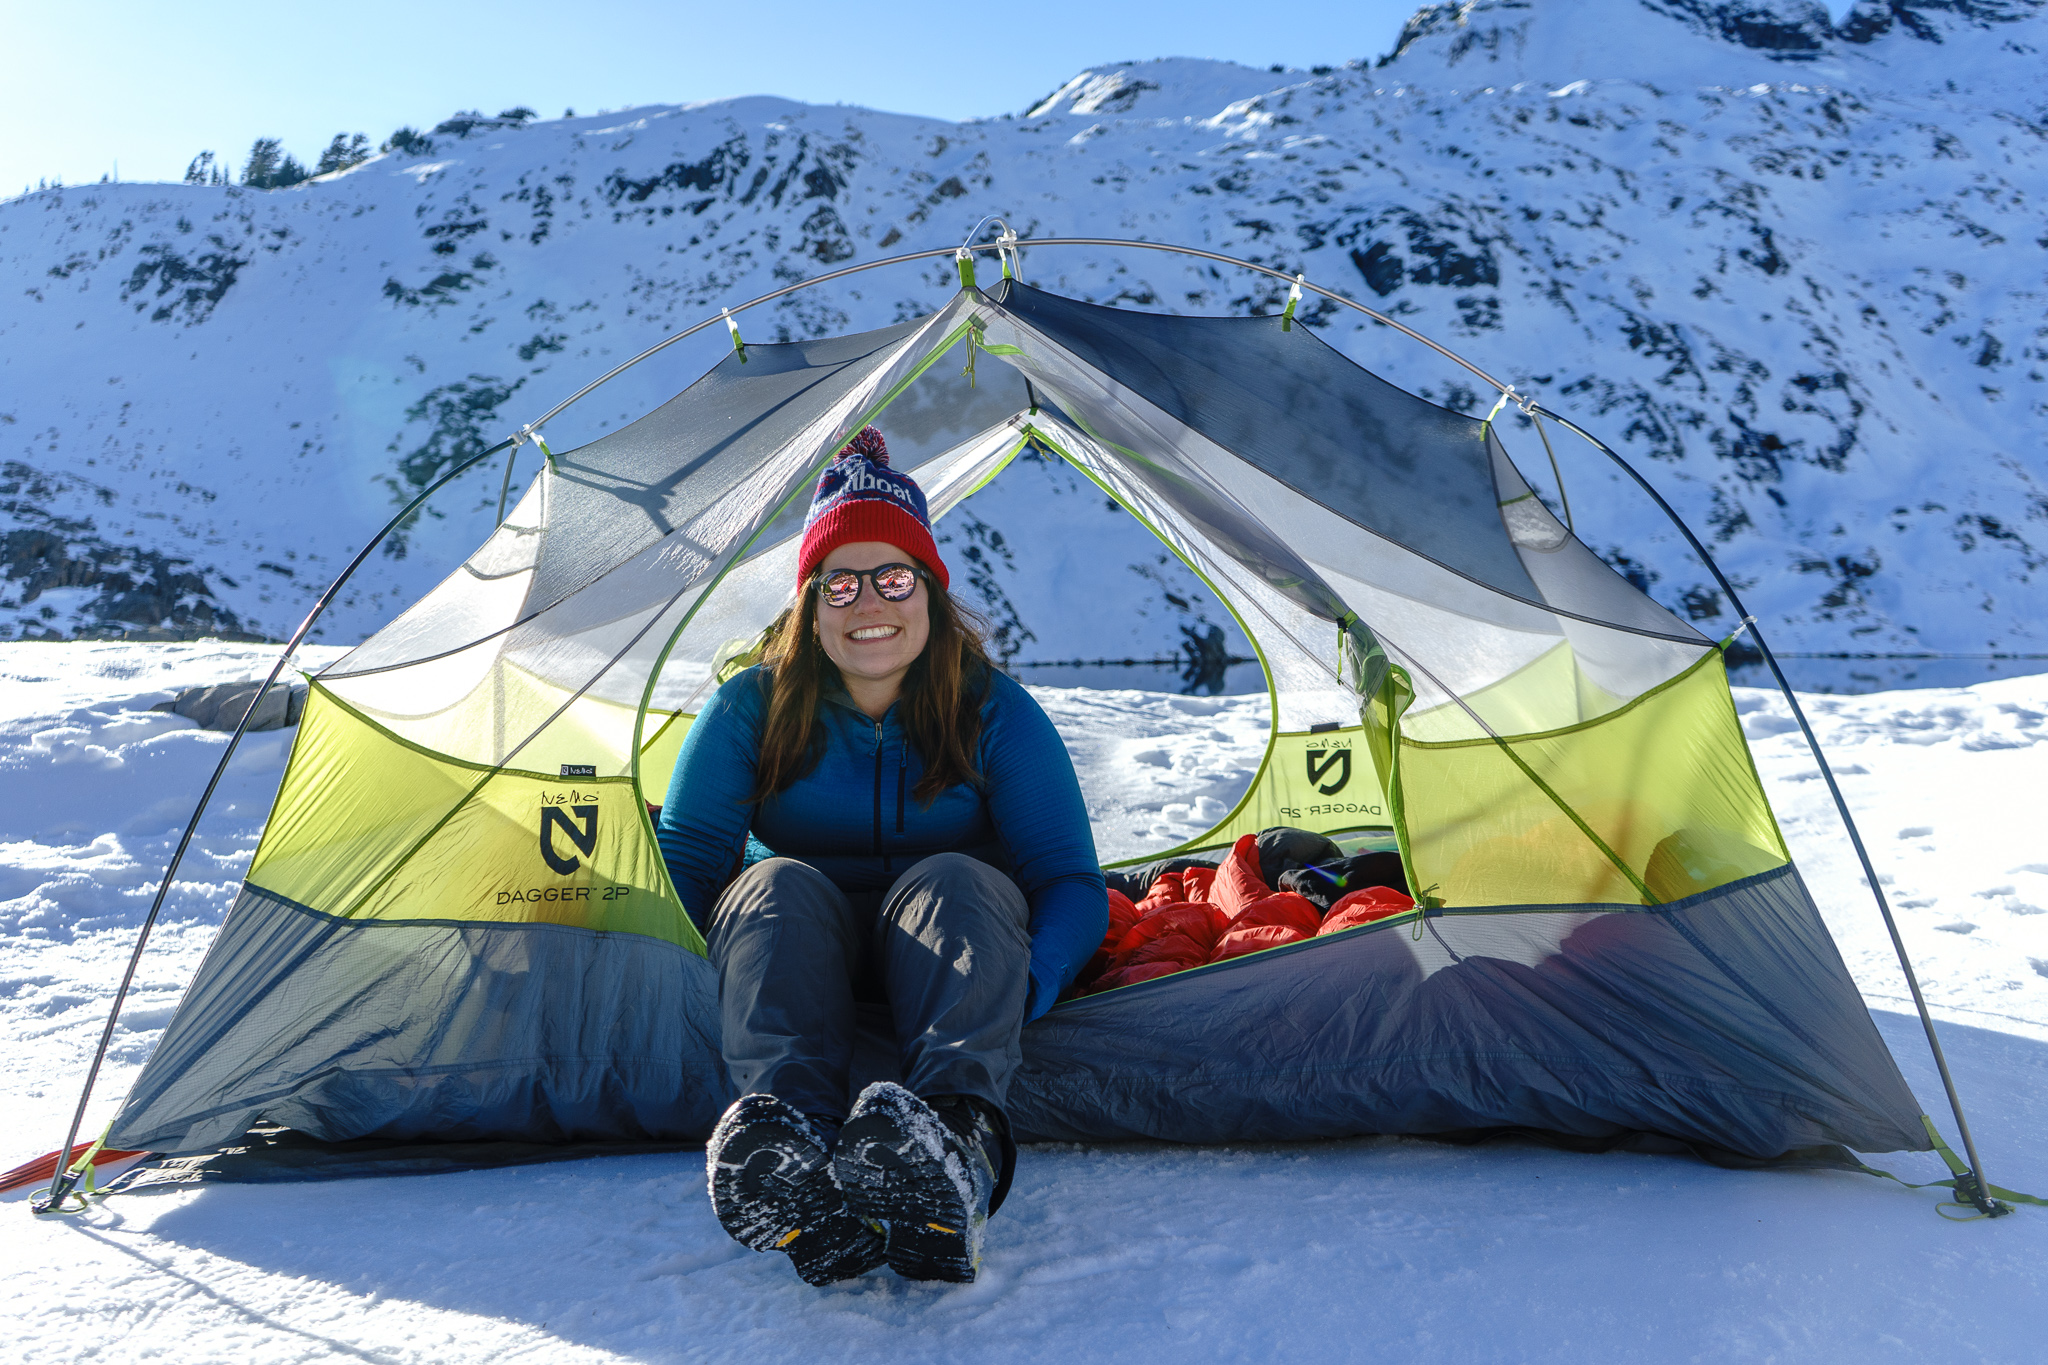 3 season tents are fine for snow camping as long as it isn't too windy or snowing too much